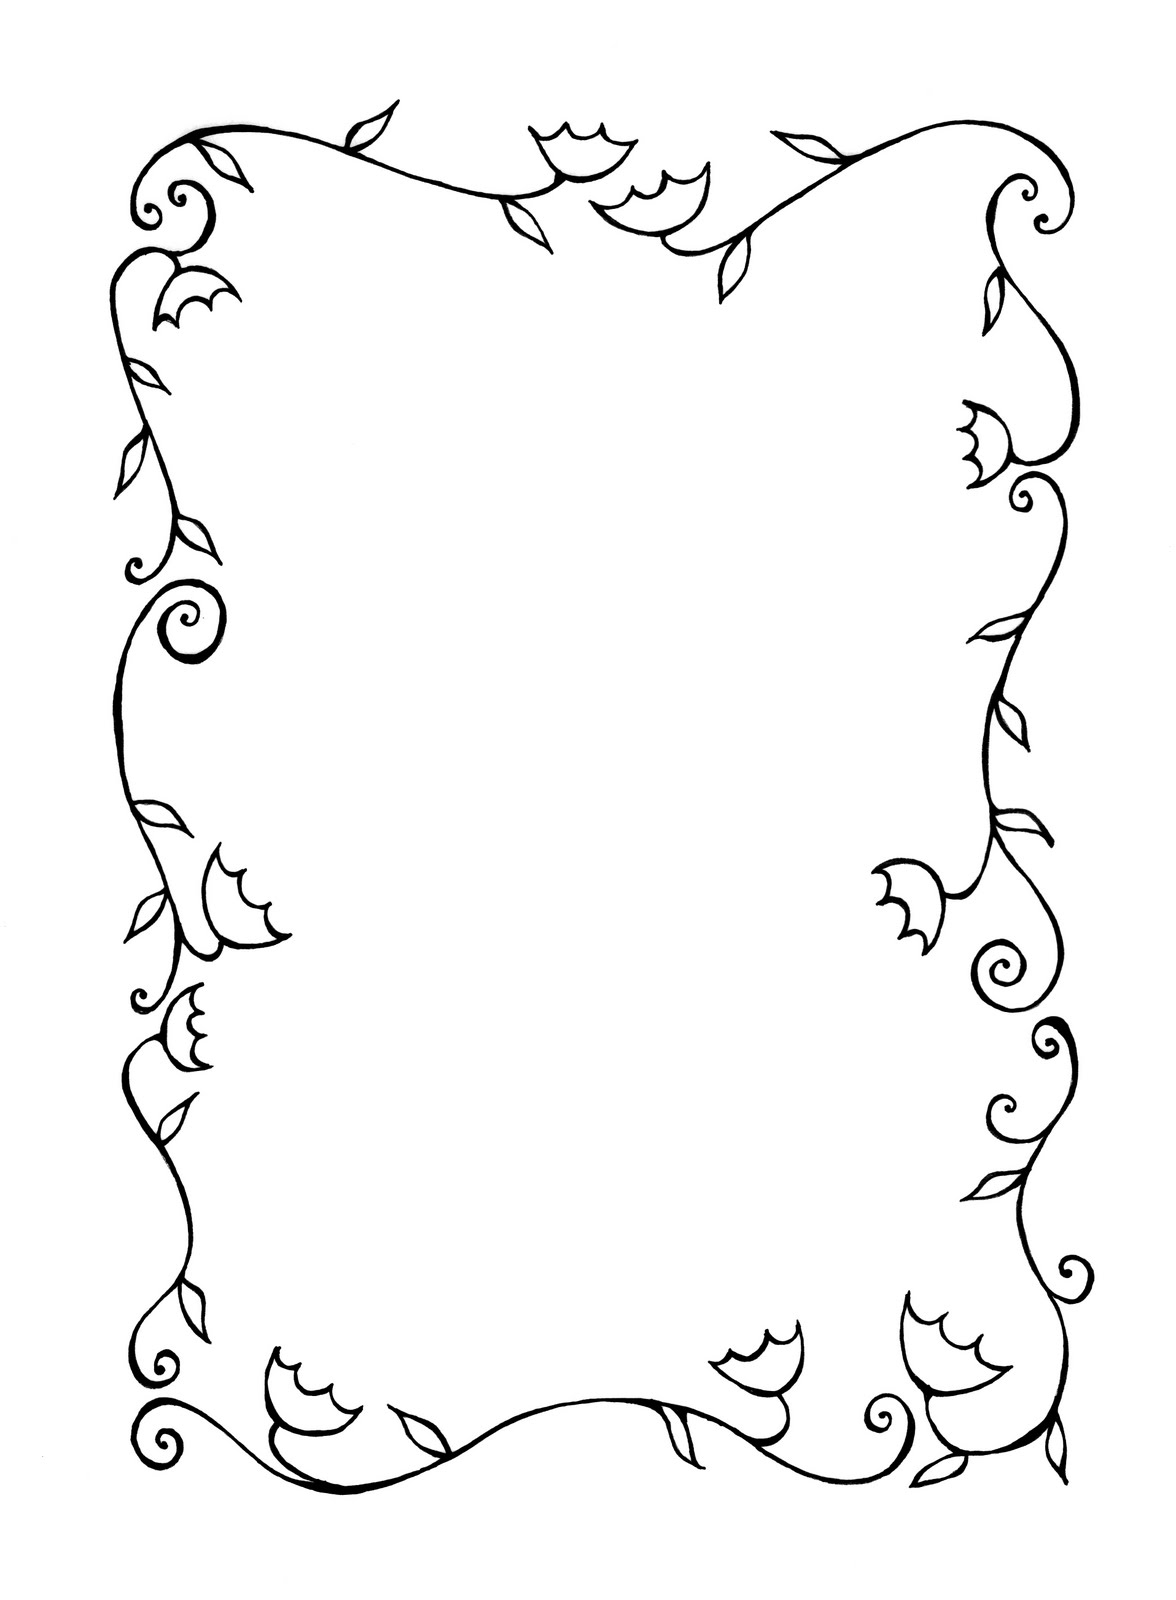 Drawing Flower Page Border Designs